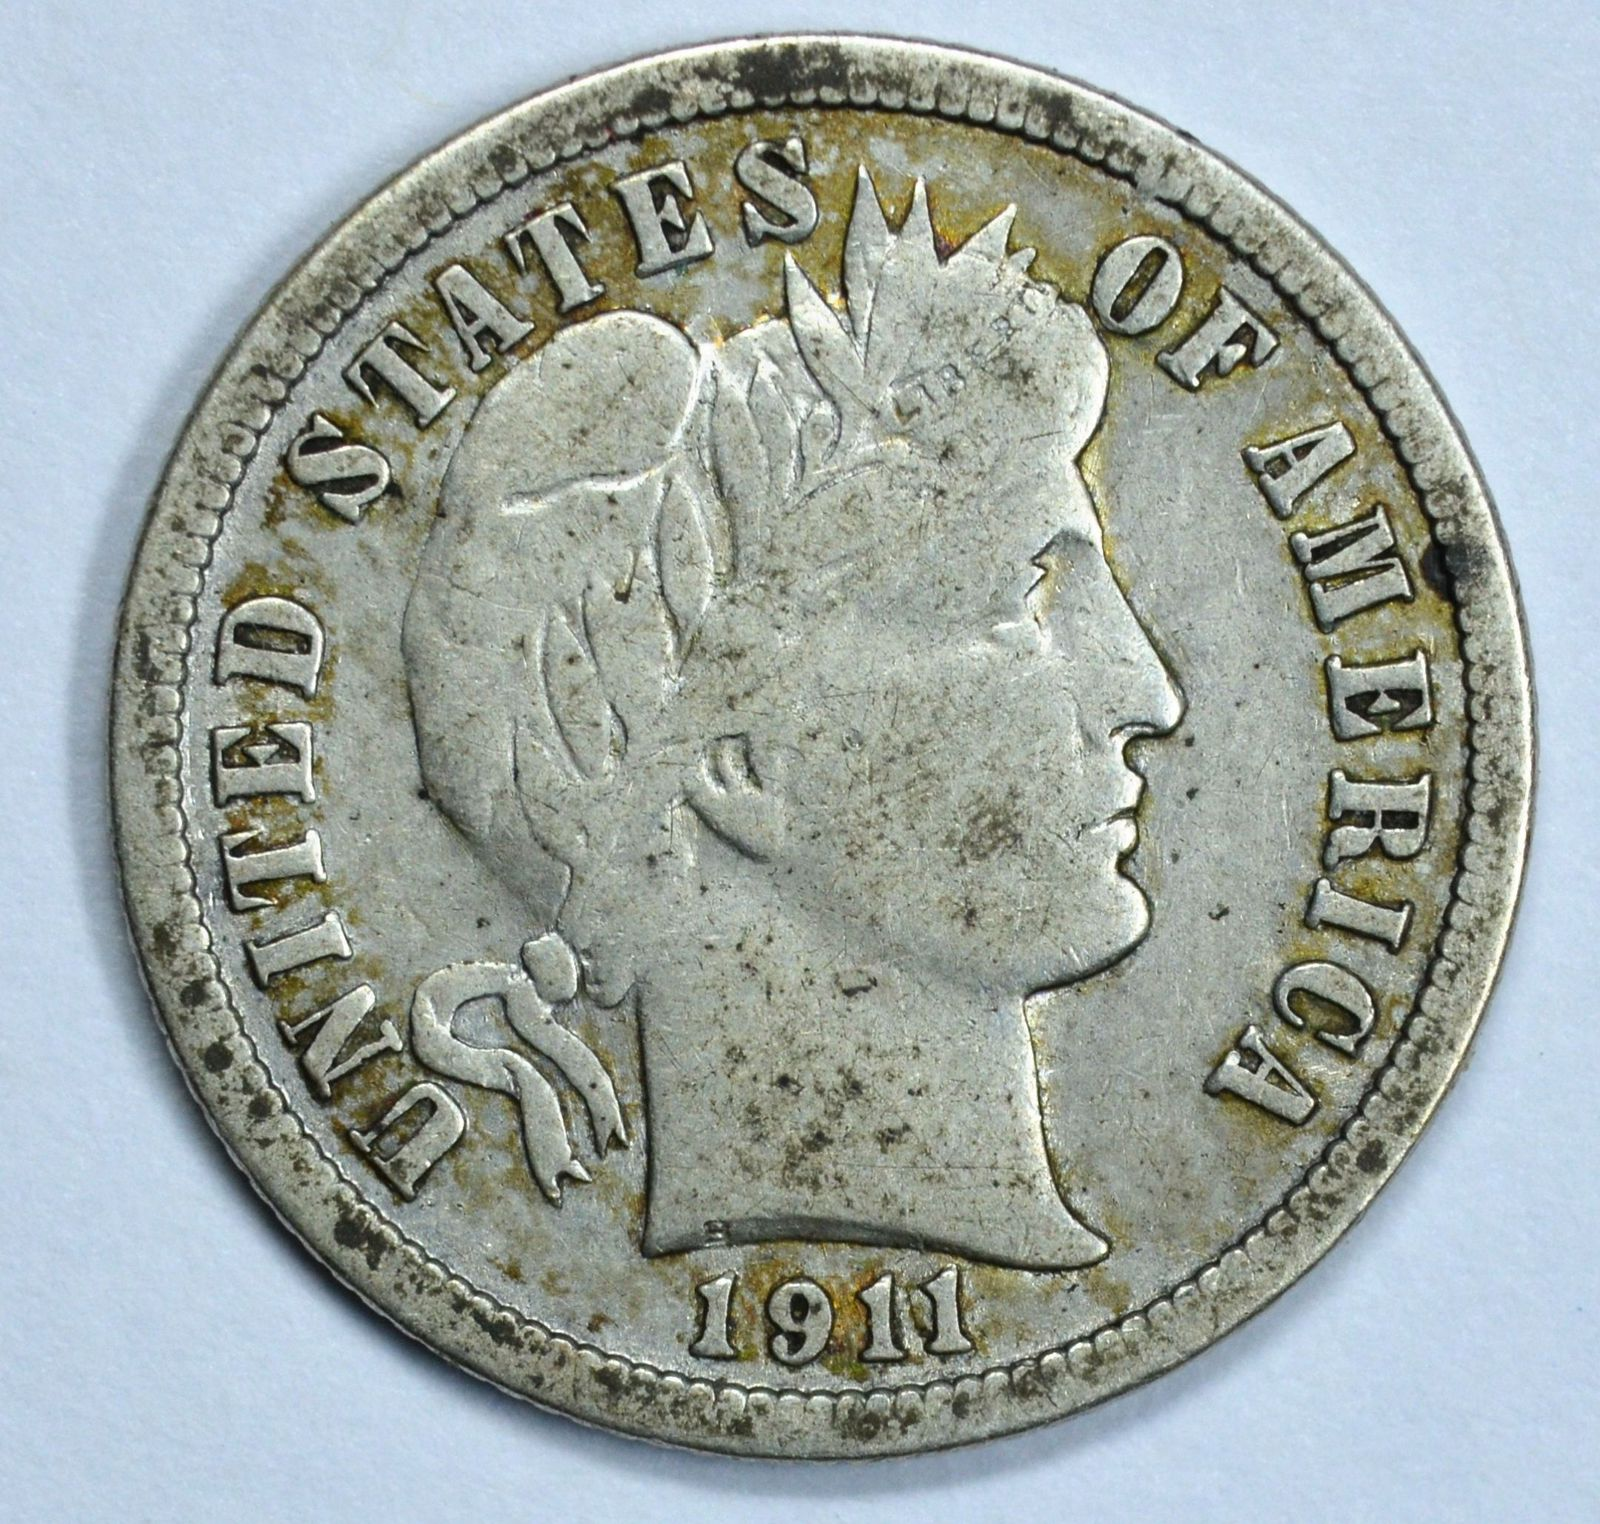 1911 Barber circulated silver dime VF details - $16.00